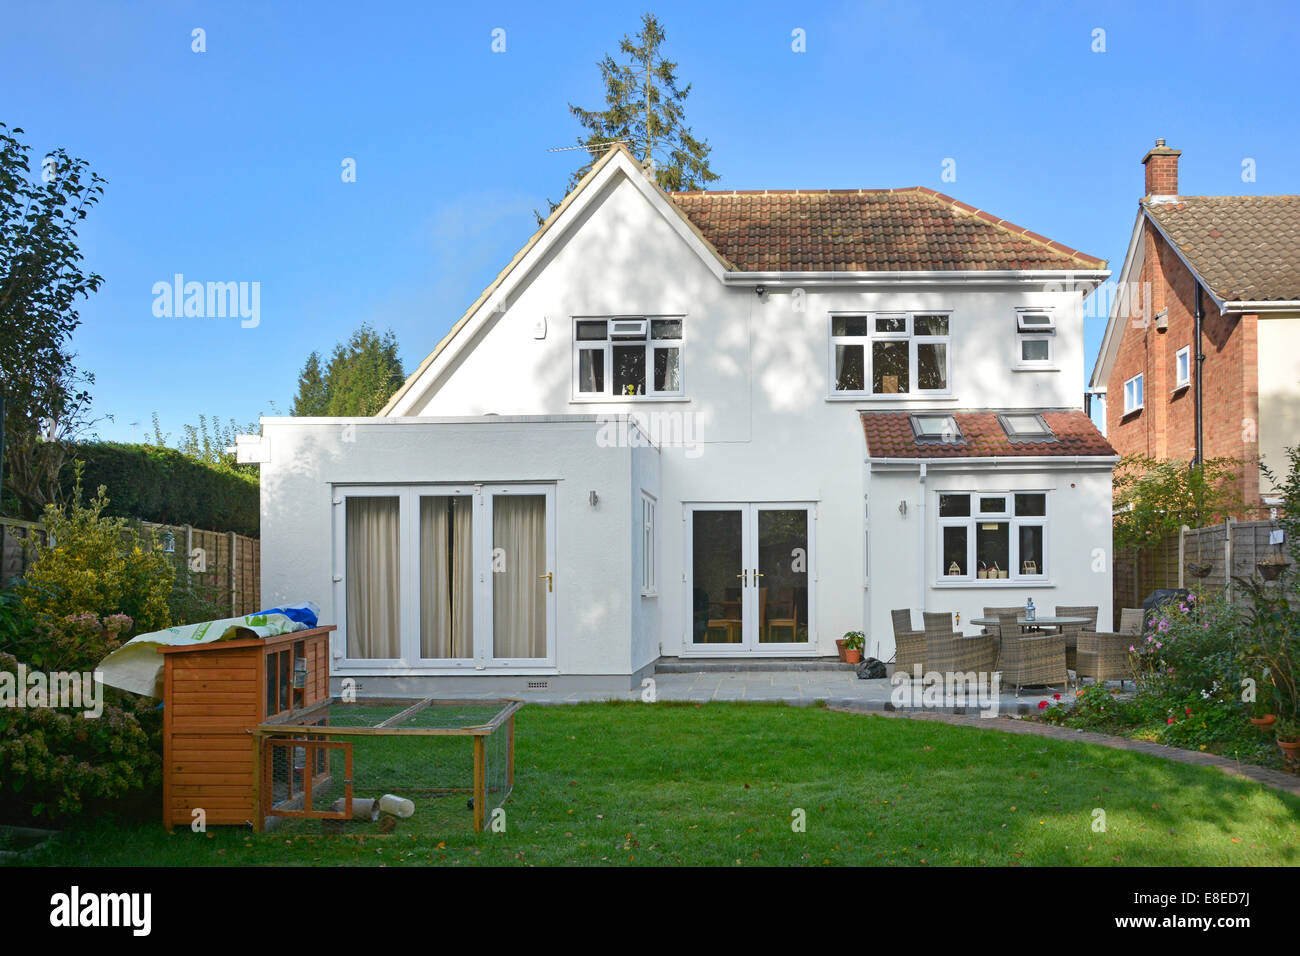 Completed two storey detached house side extension roof works & patio from back garden Essex England UK see - Stock Image